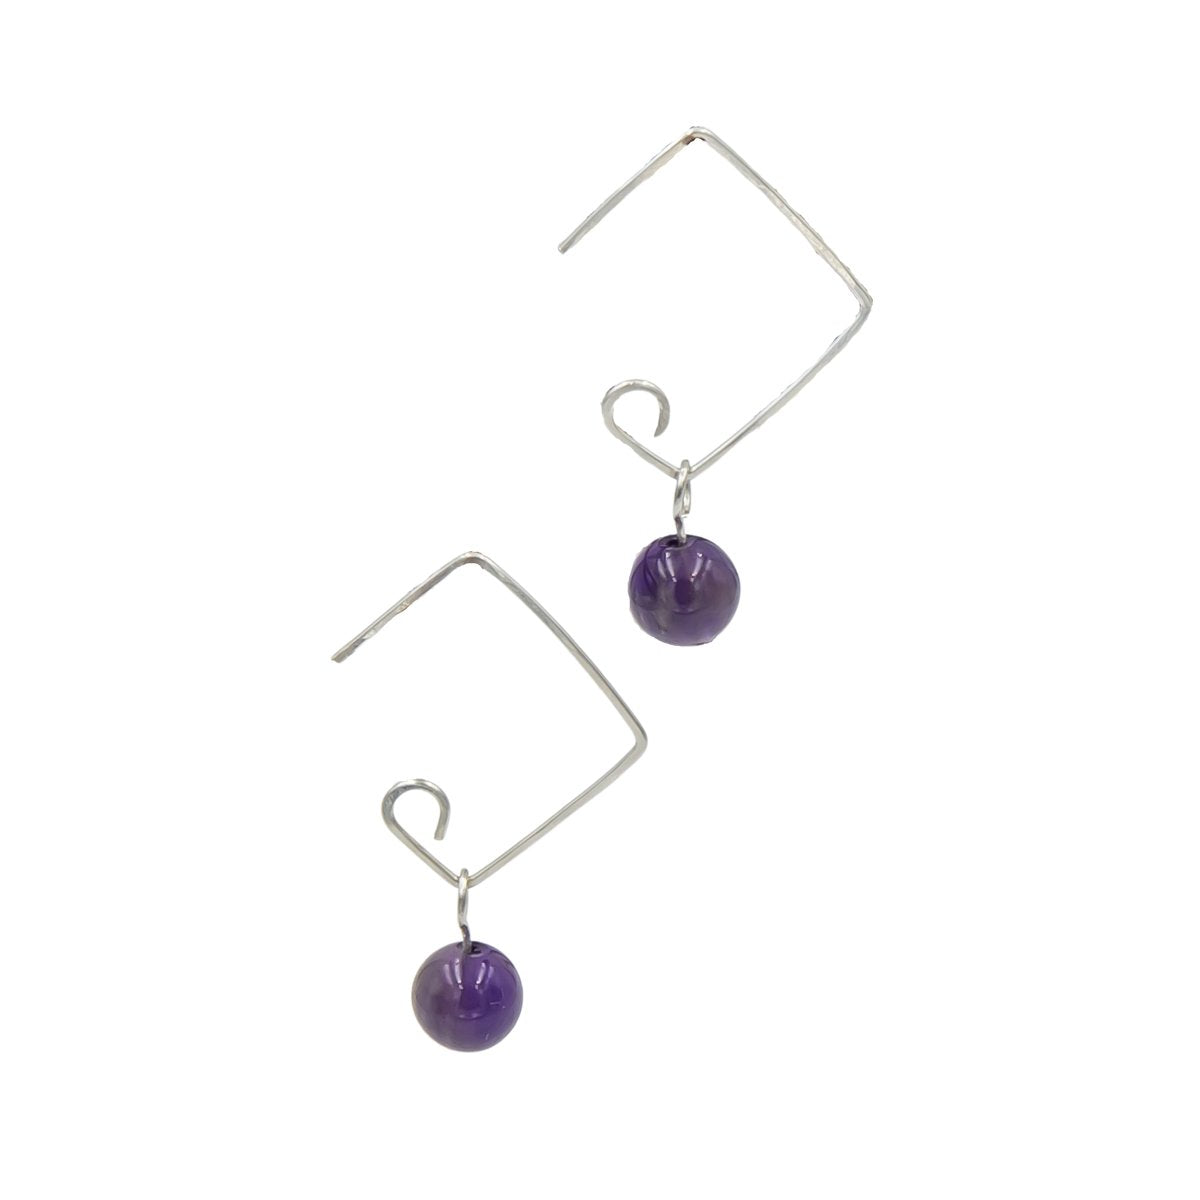 Modern Hammered Sterling Silver Amethyst Square Earrings